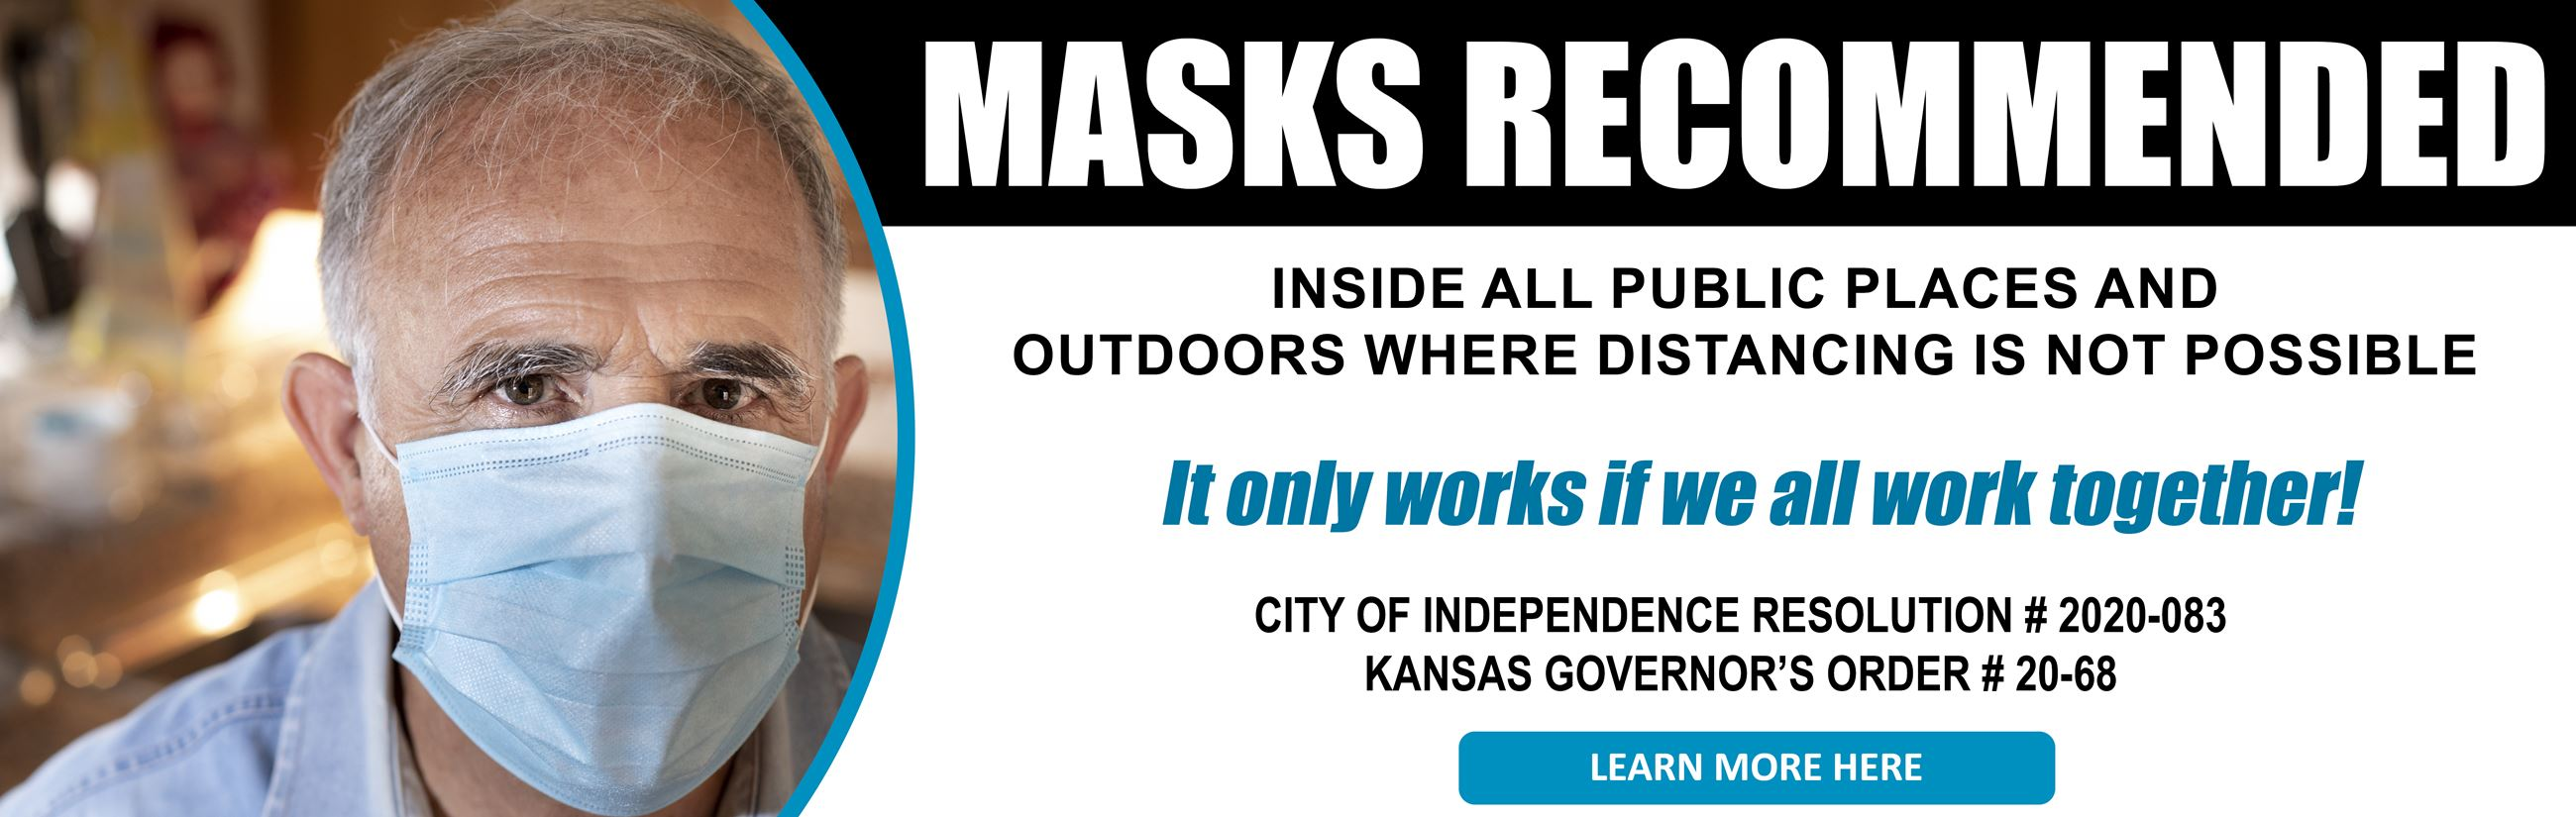 Masks Required Web Banner 11.20.2020 (002)